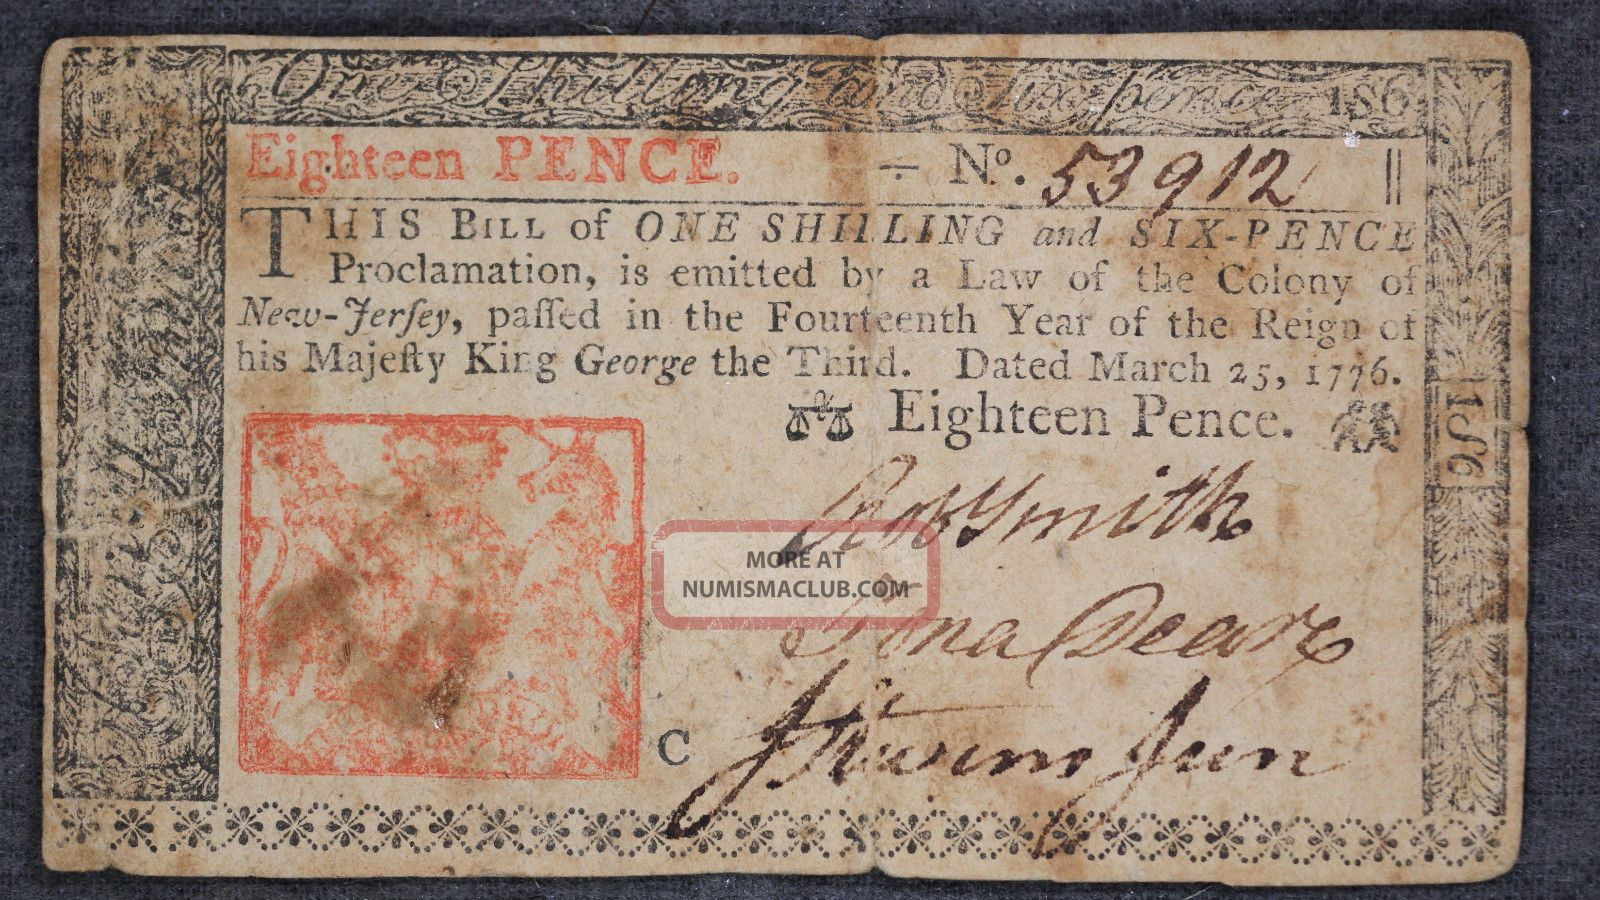 Eighteen Pence Jersey Note In Fine Paper Money: US photo